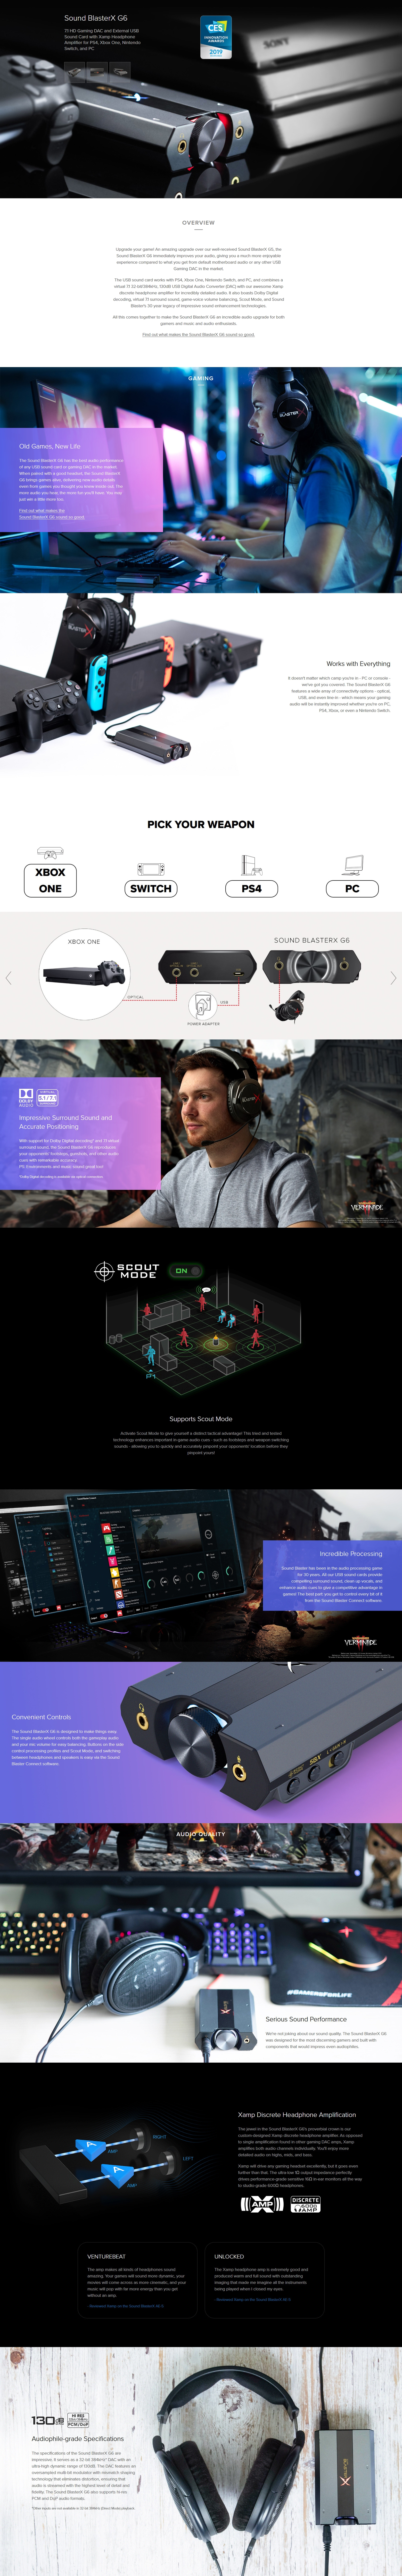 A large marketing image providing additional information about the product Creative Sound BlasterX G6 Hi-Res Gaming External Sound Card - Additional alt info not provided